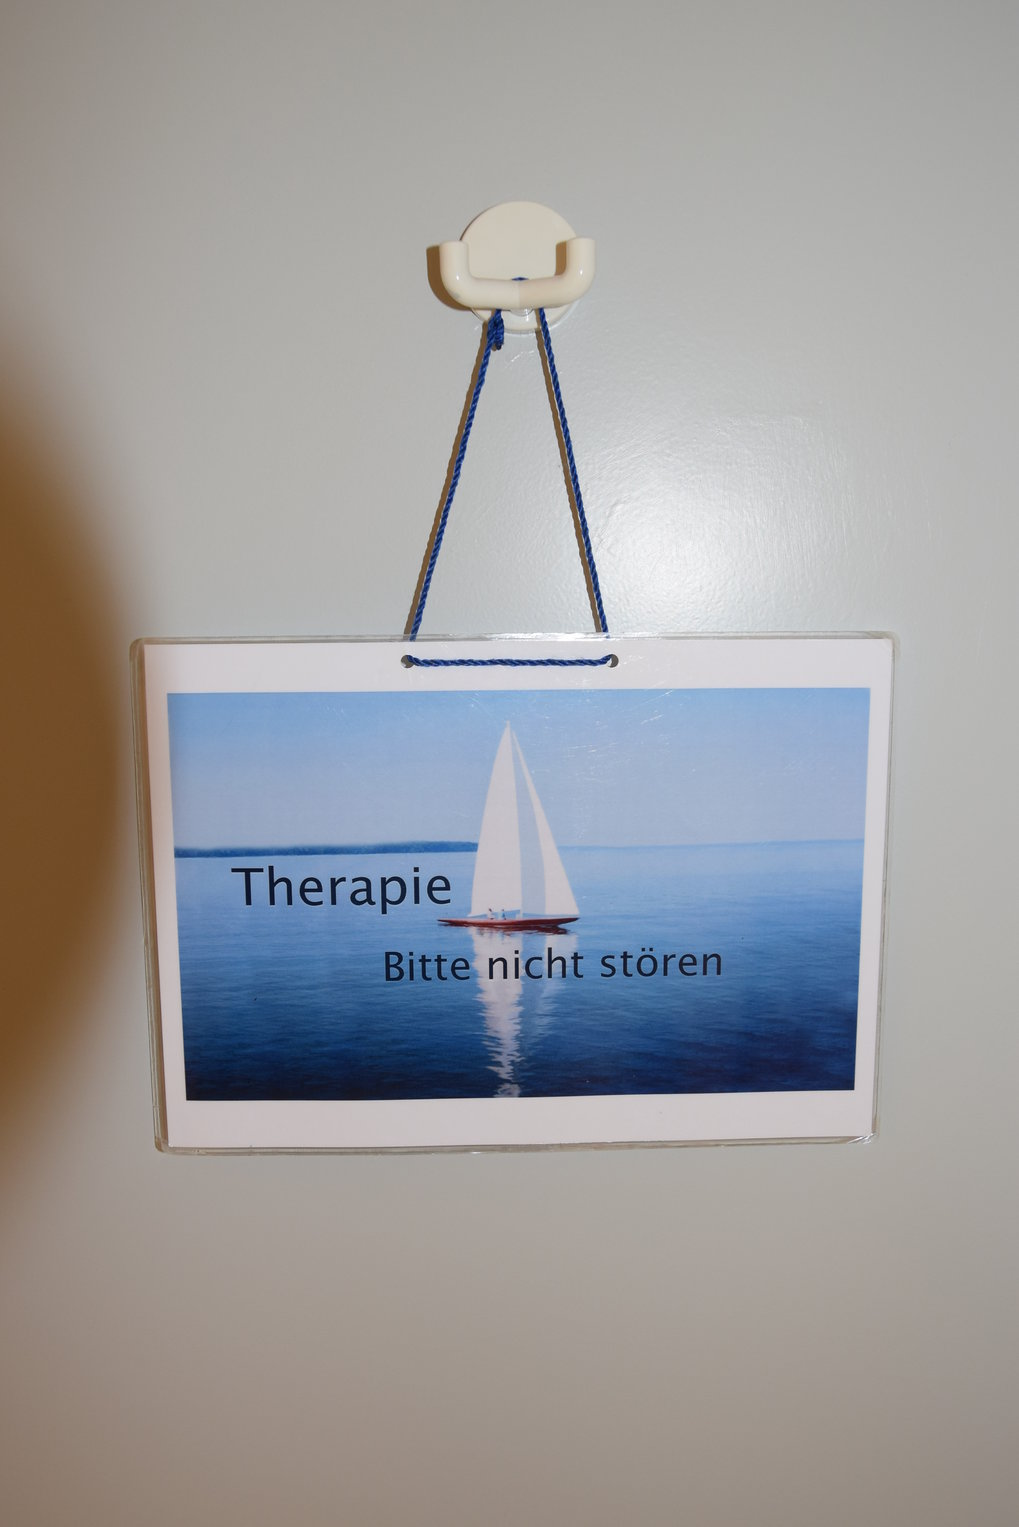 Our treatment portfolio